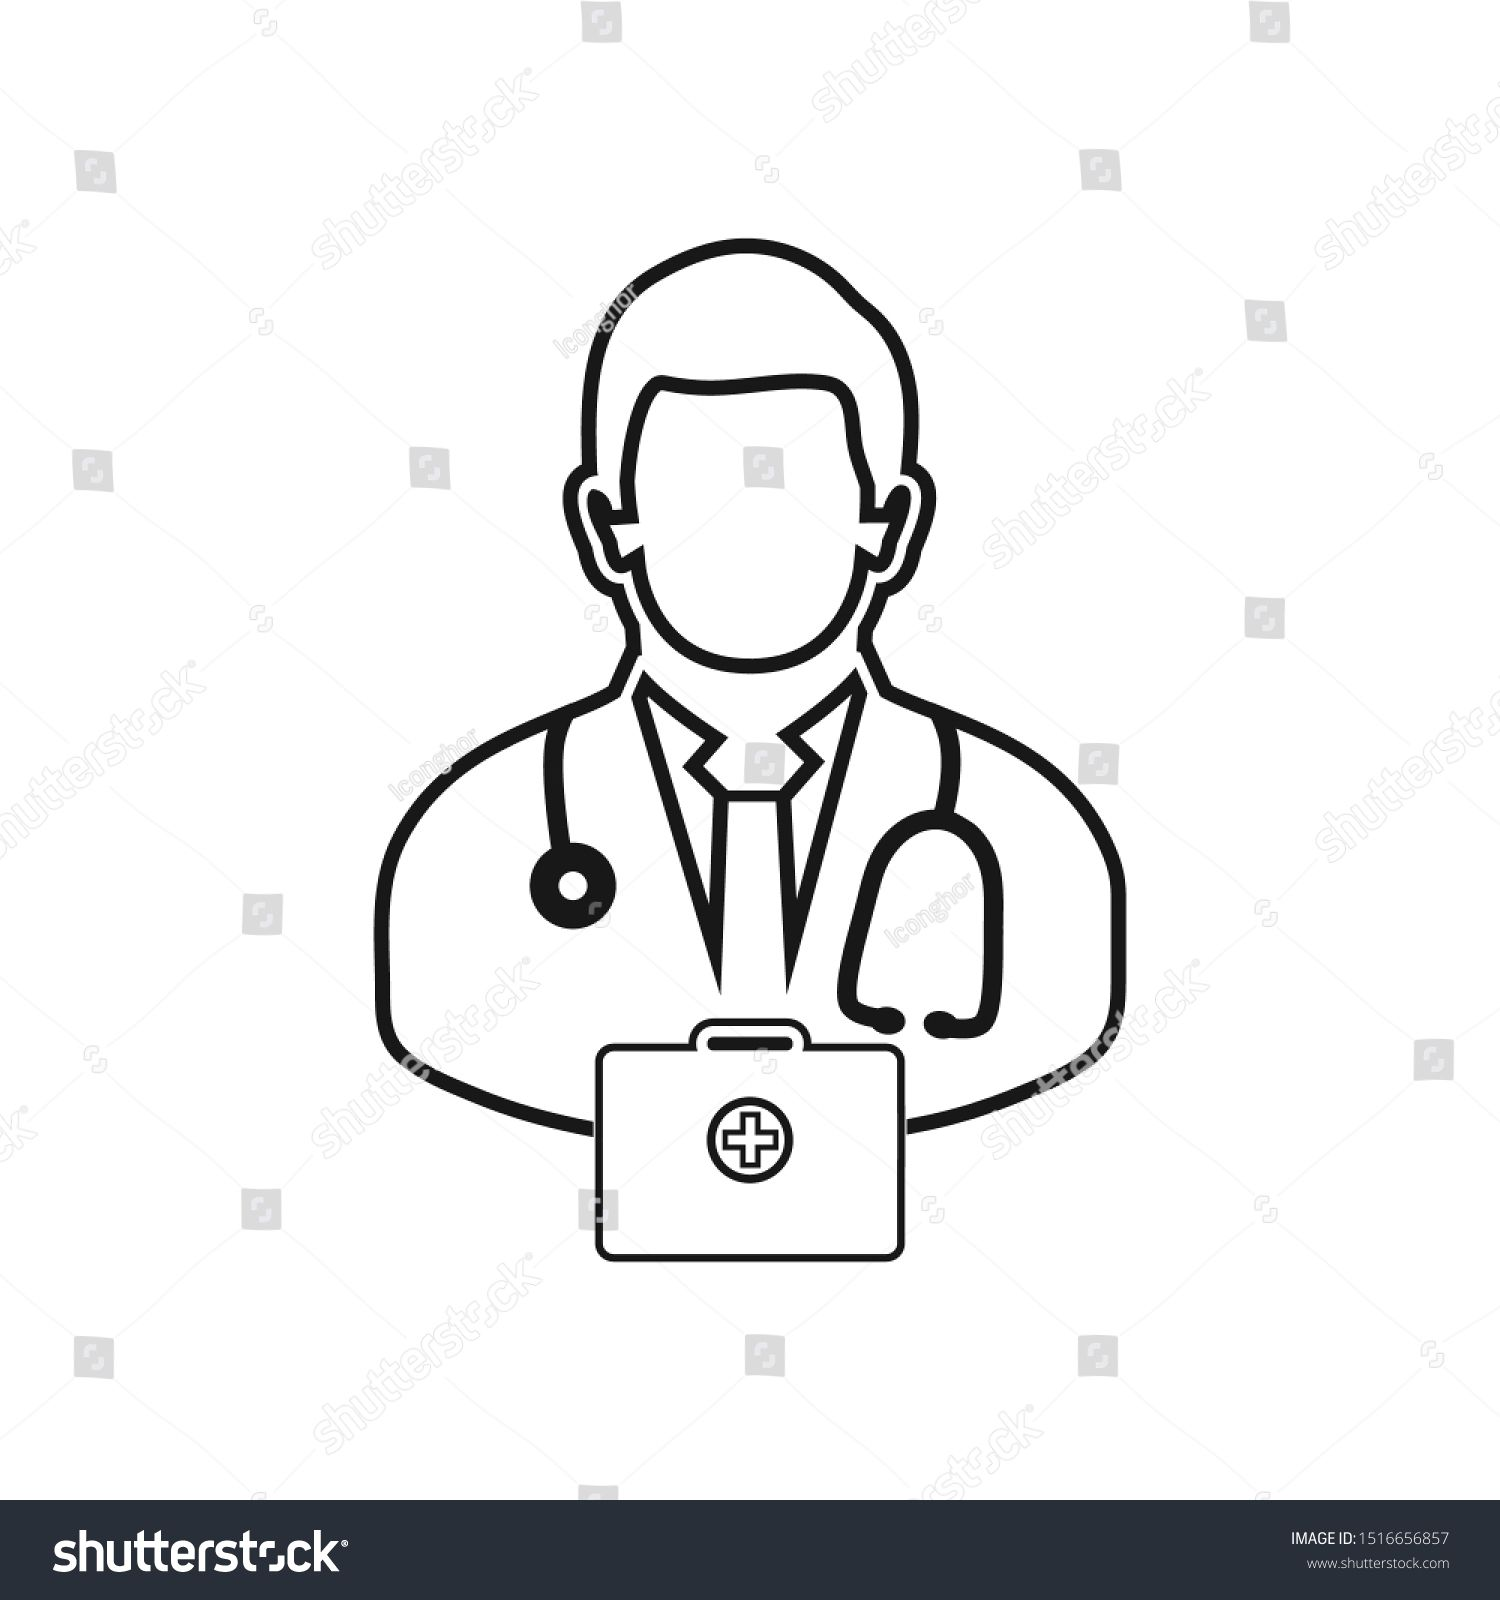 Doctor On Duty Line Icon Vector Stock Vector (Royalty Free